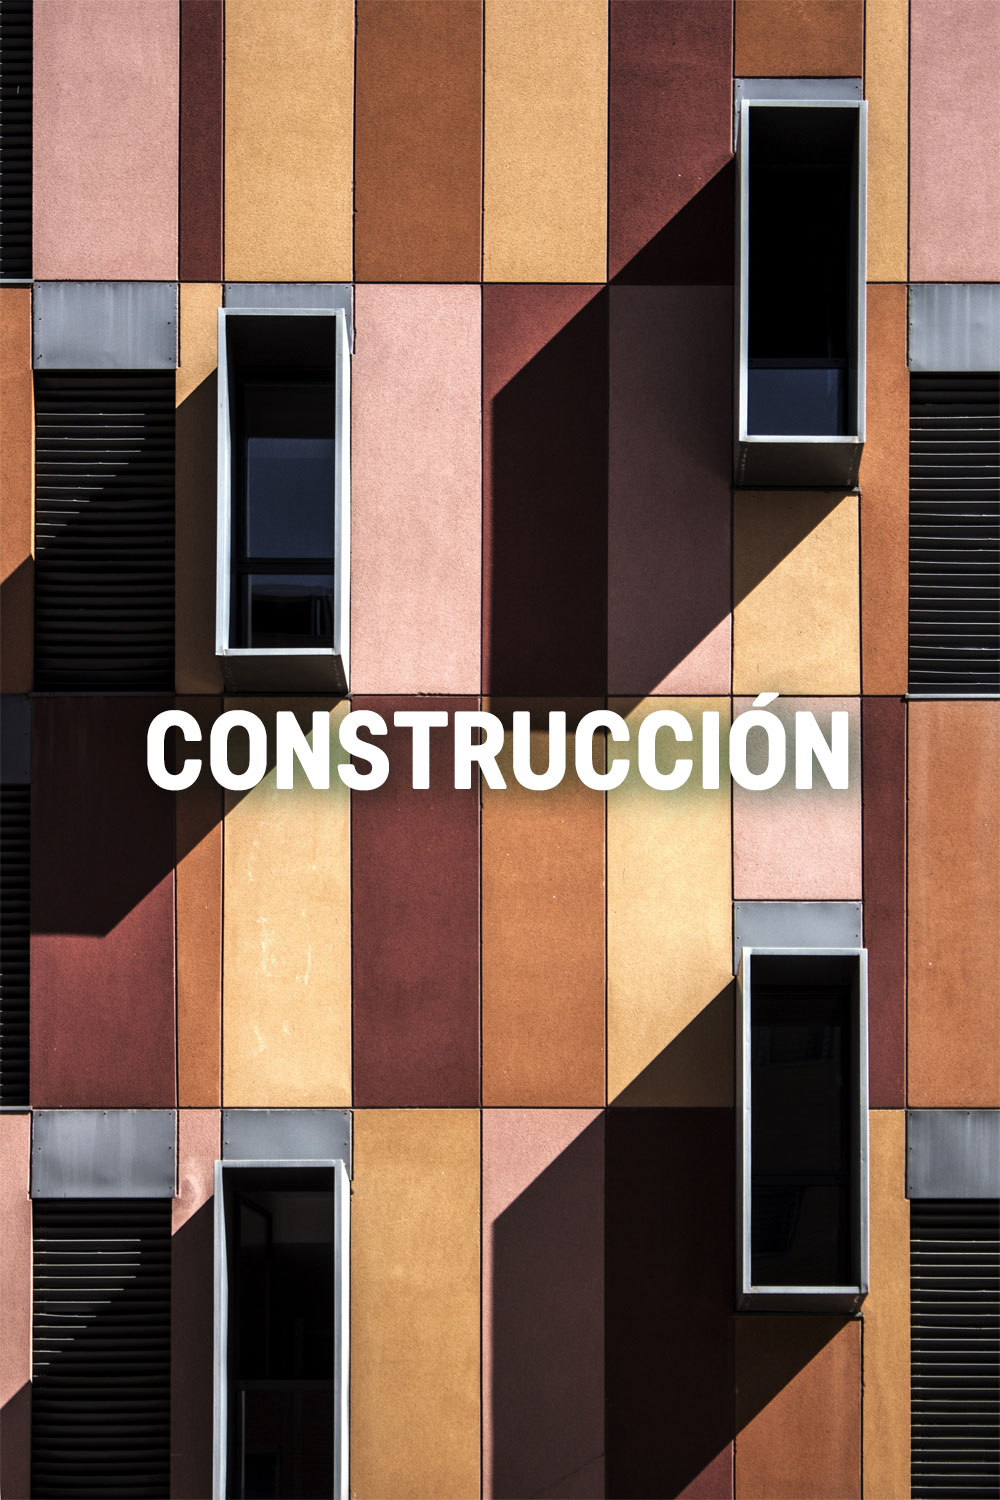 construccion - Bewat - Tratamiento de Aguas Residuales y Potables